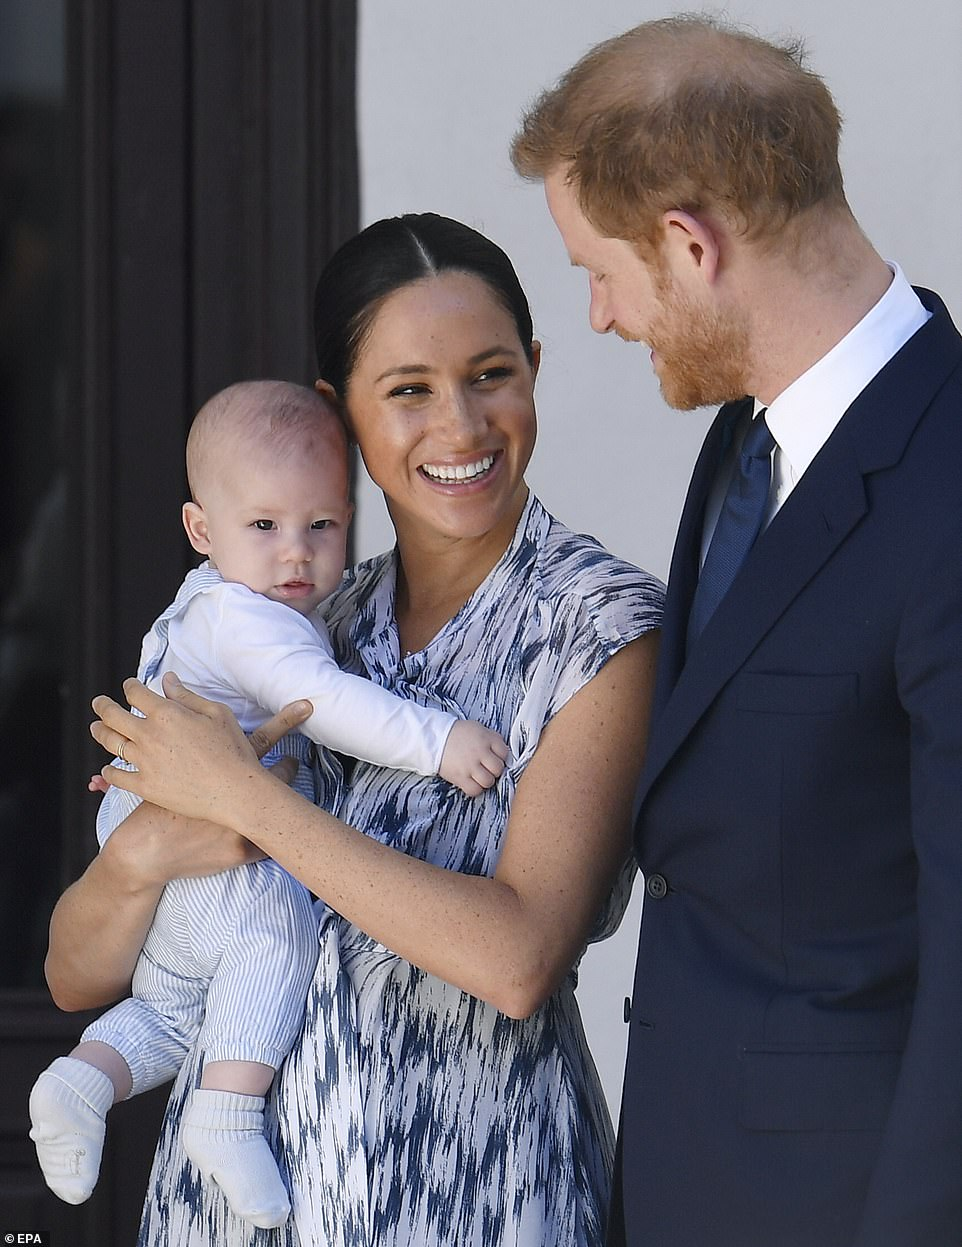 Harry and Meghan, holding Archie, at the Desmond and Leah Tutu Legacy Foundation in Cape Town, September 25, 2019